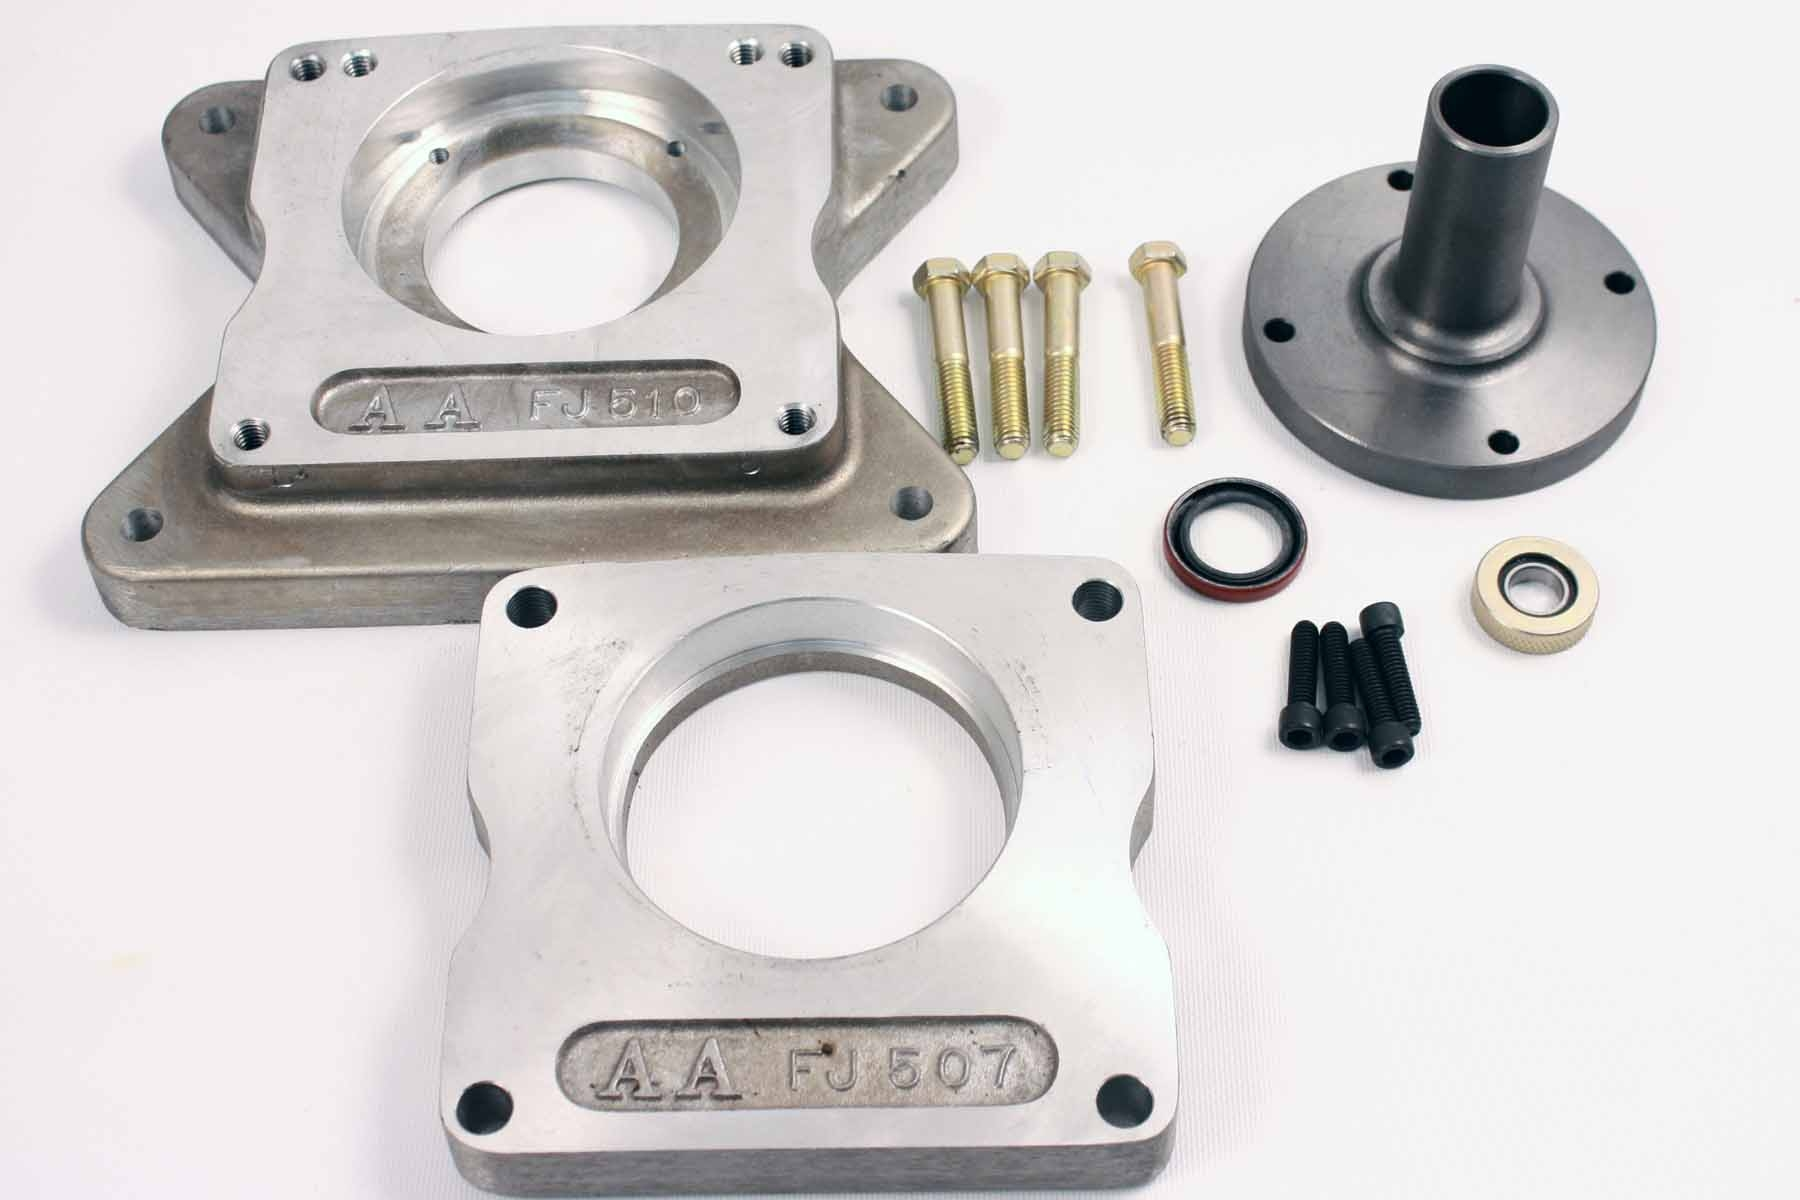 712508 : Ford V8 to Jeep T14 or T86 Transmission Adapter Kit